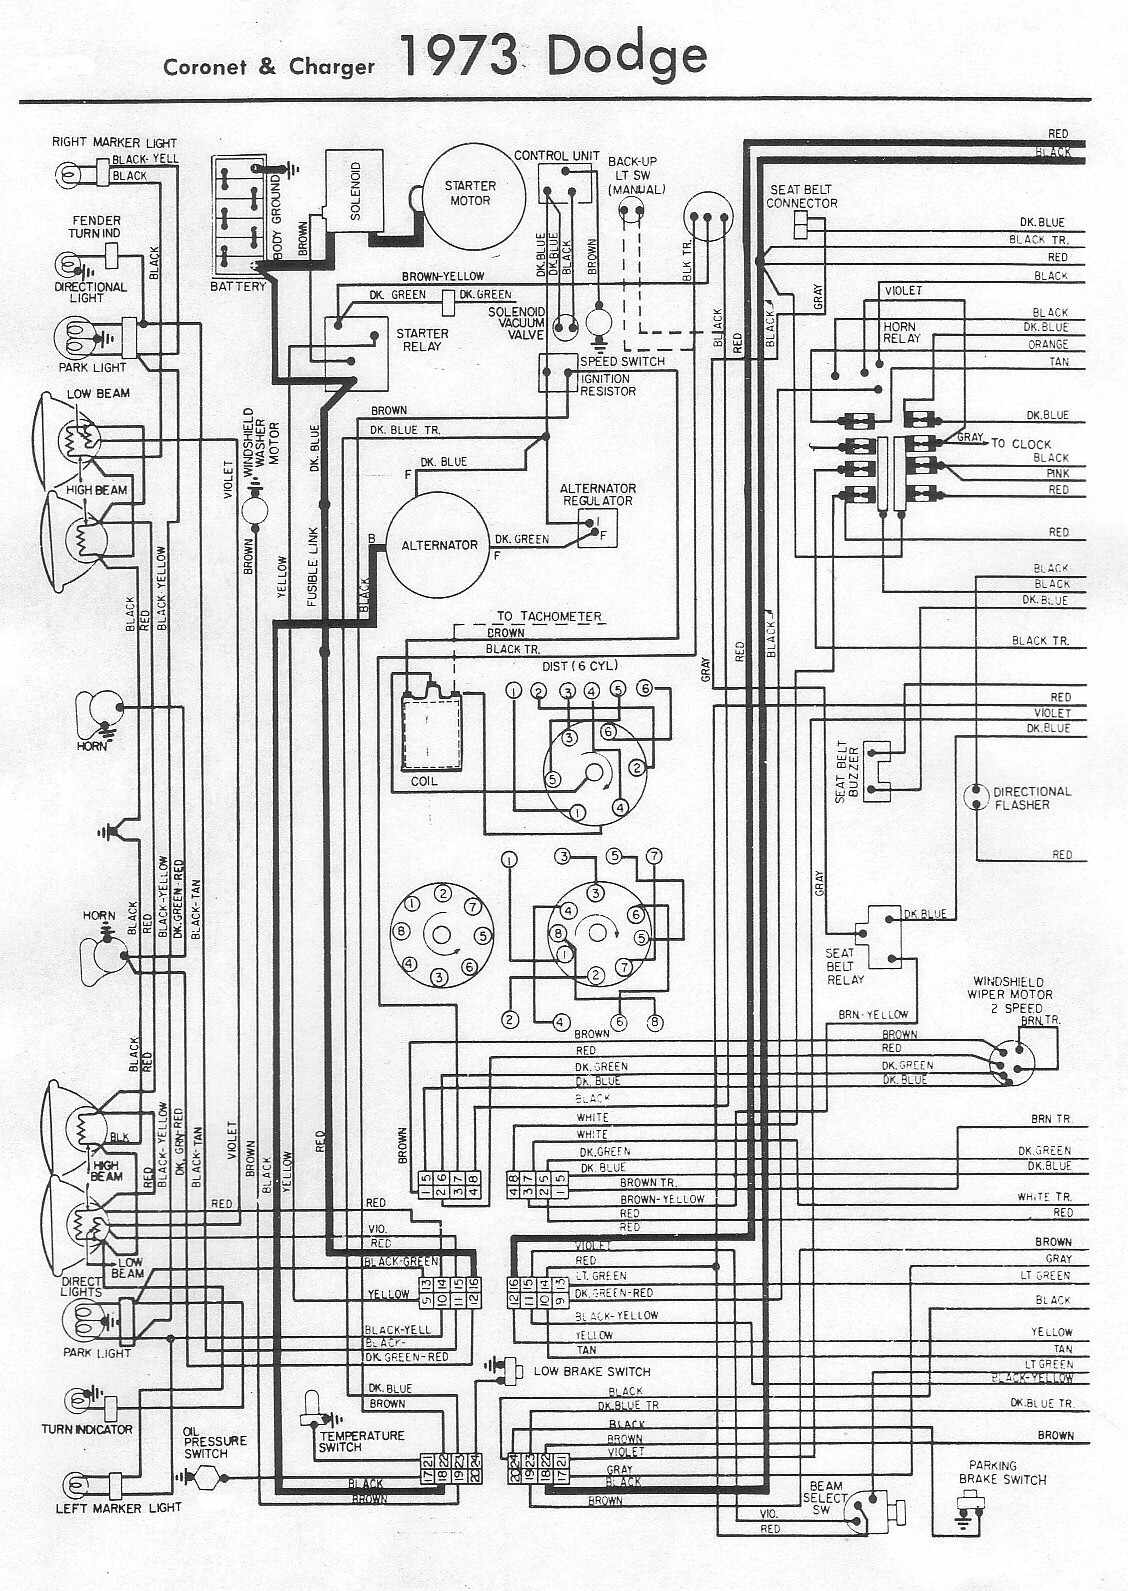 1973 dodge wiring diagram wiring diagram general helper 73 87 chevy truck wiring harness 1973 corvette fuse box wiring diagram